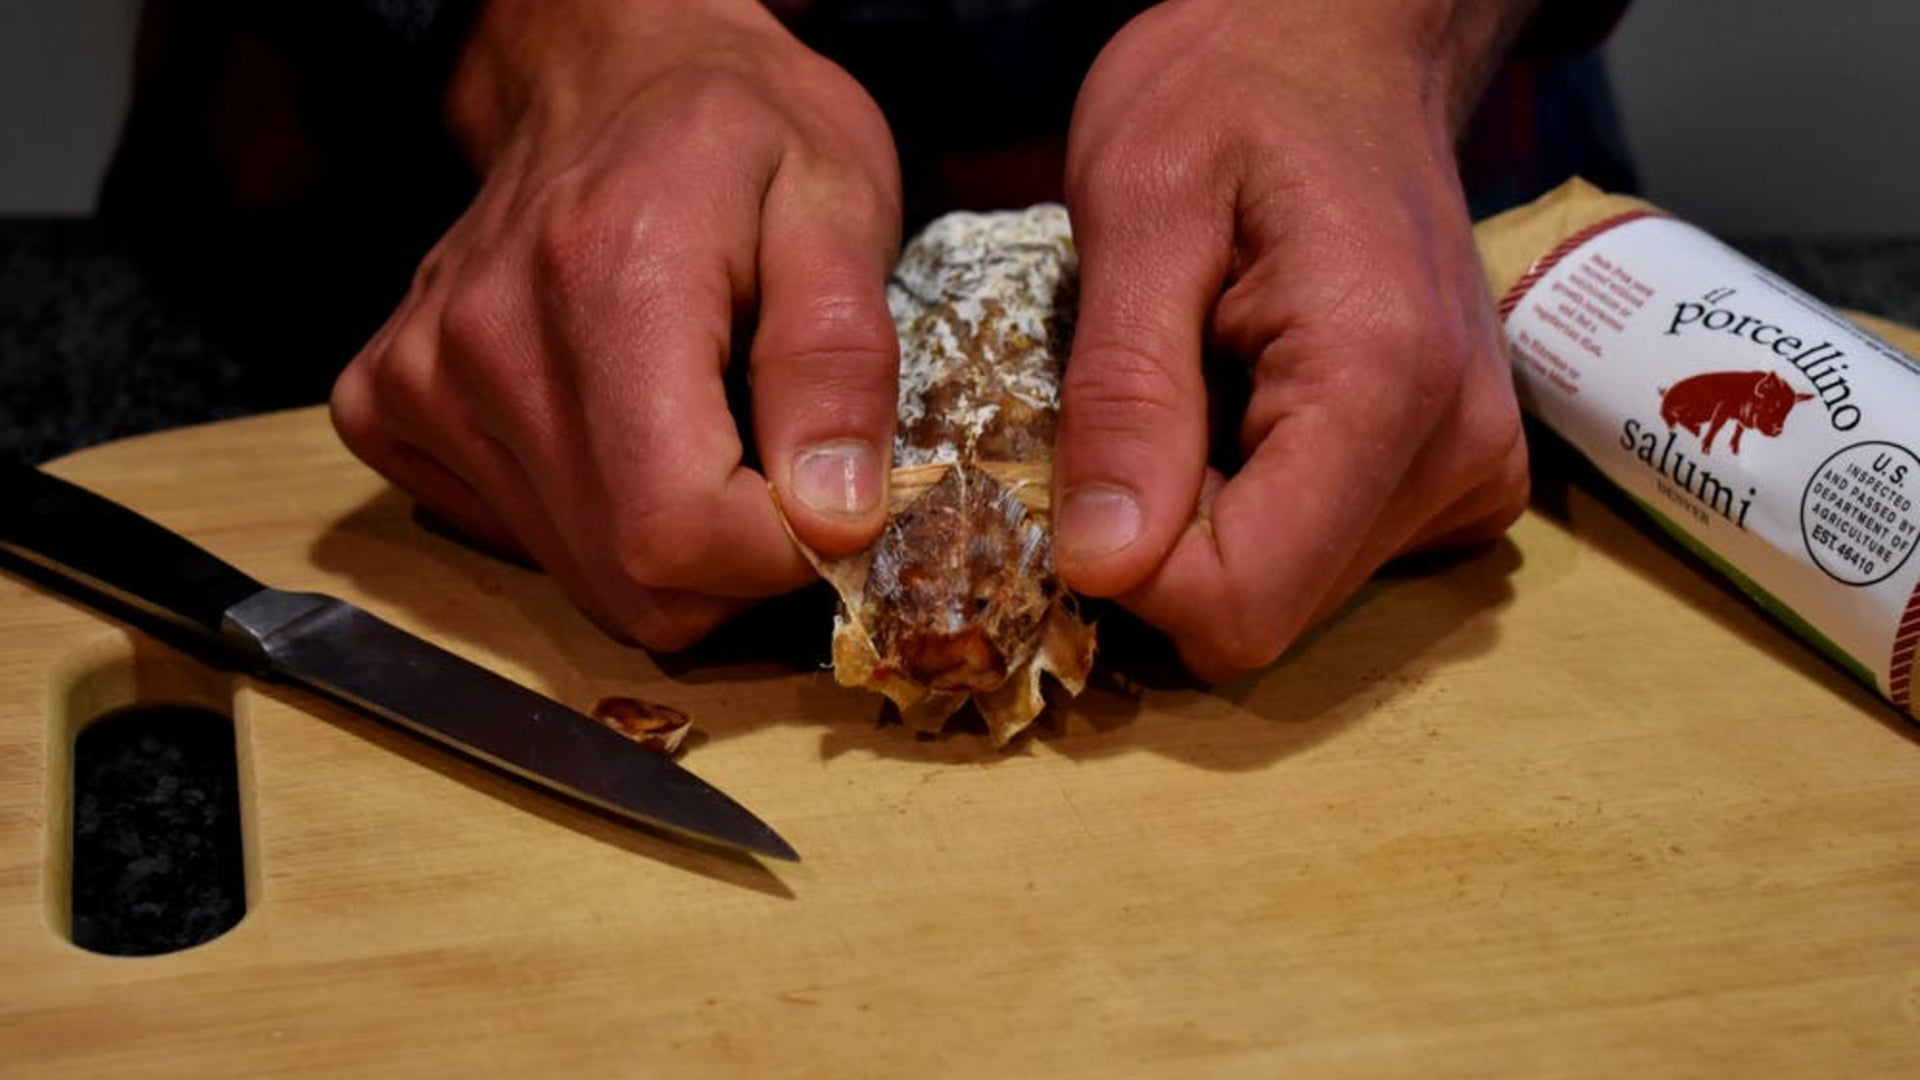 A picture showing someones hands pulling the casing off salami to show how to remove the protective mold.